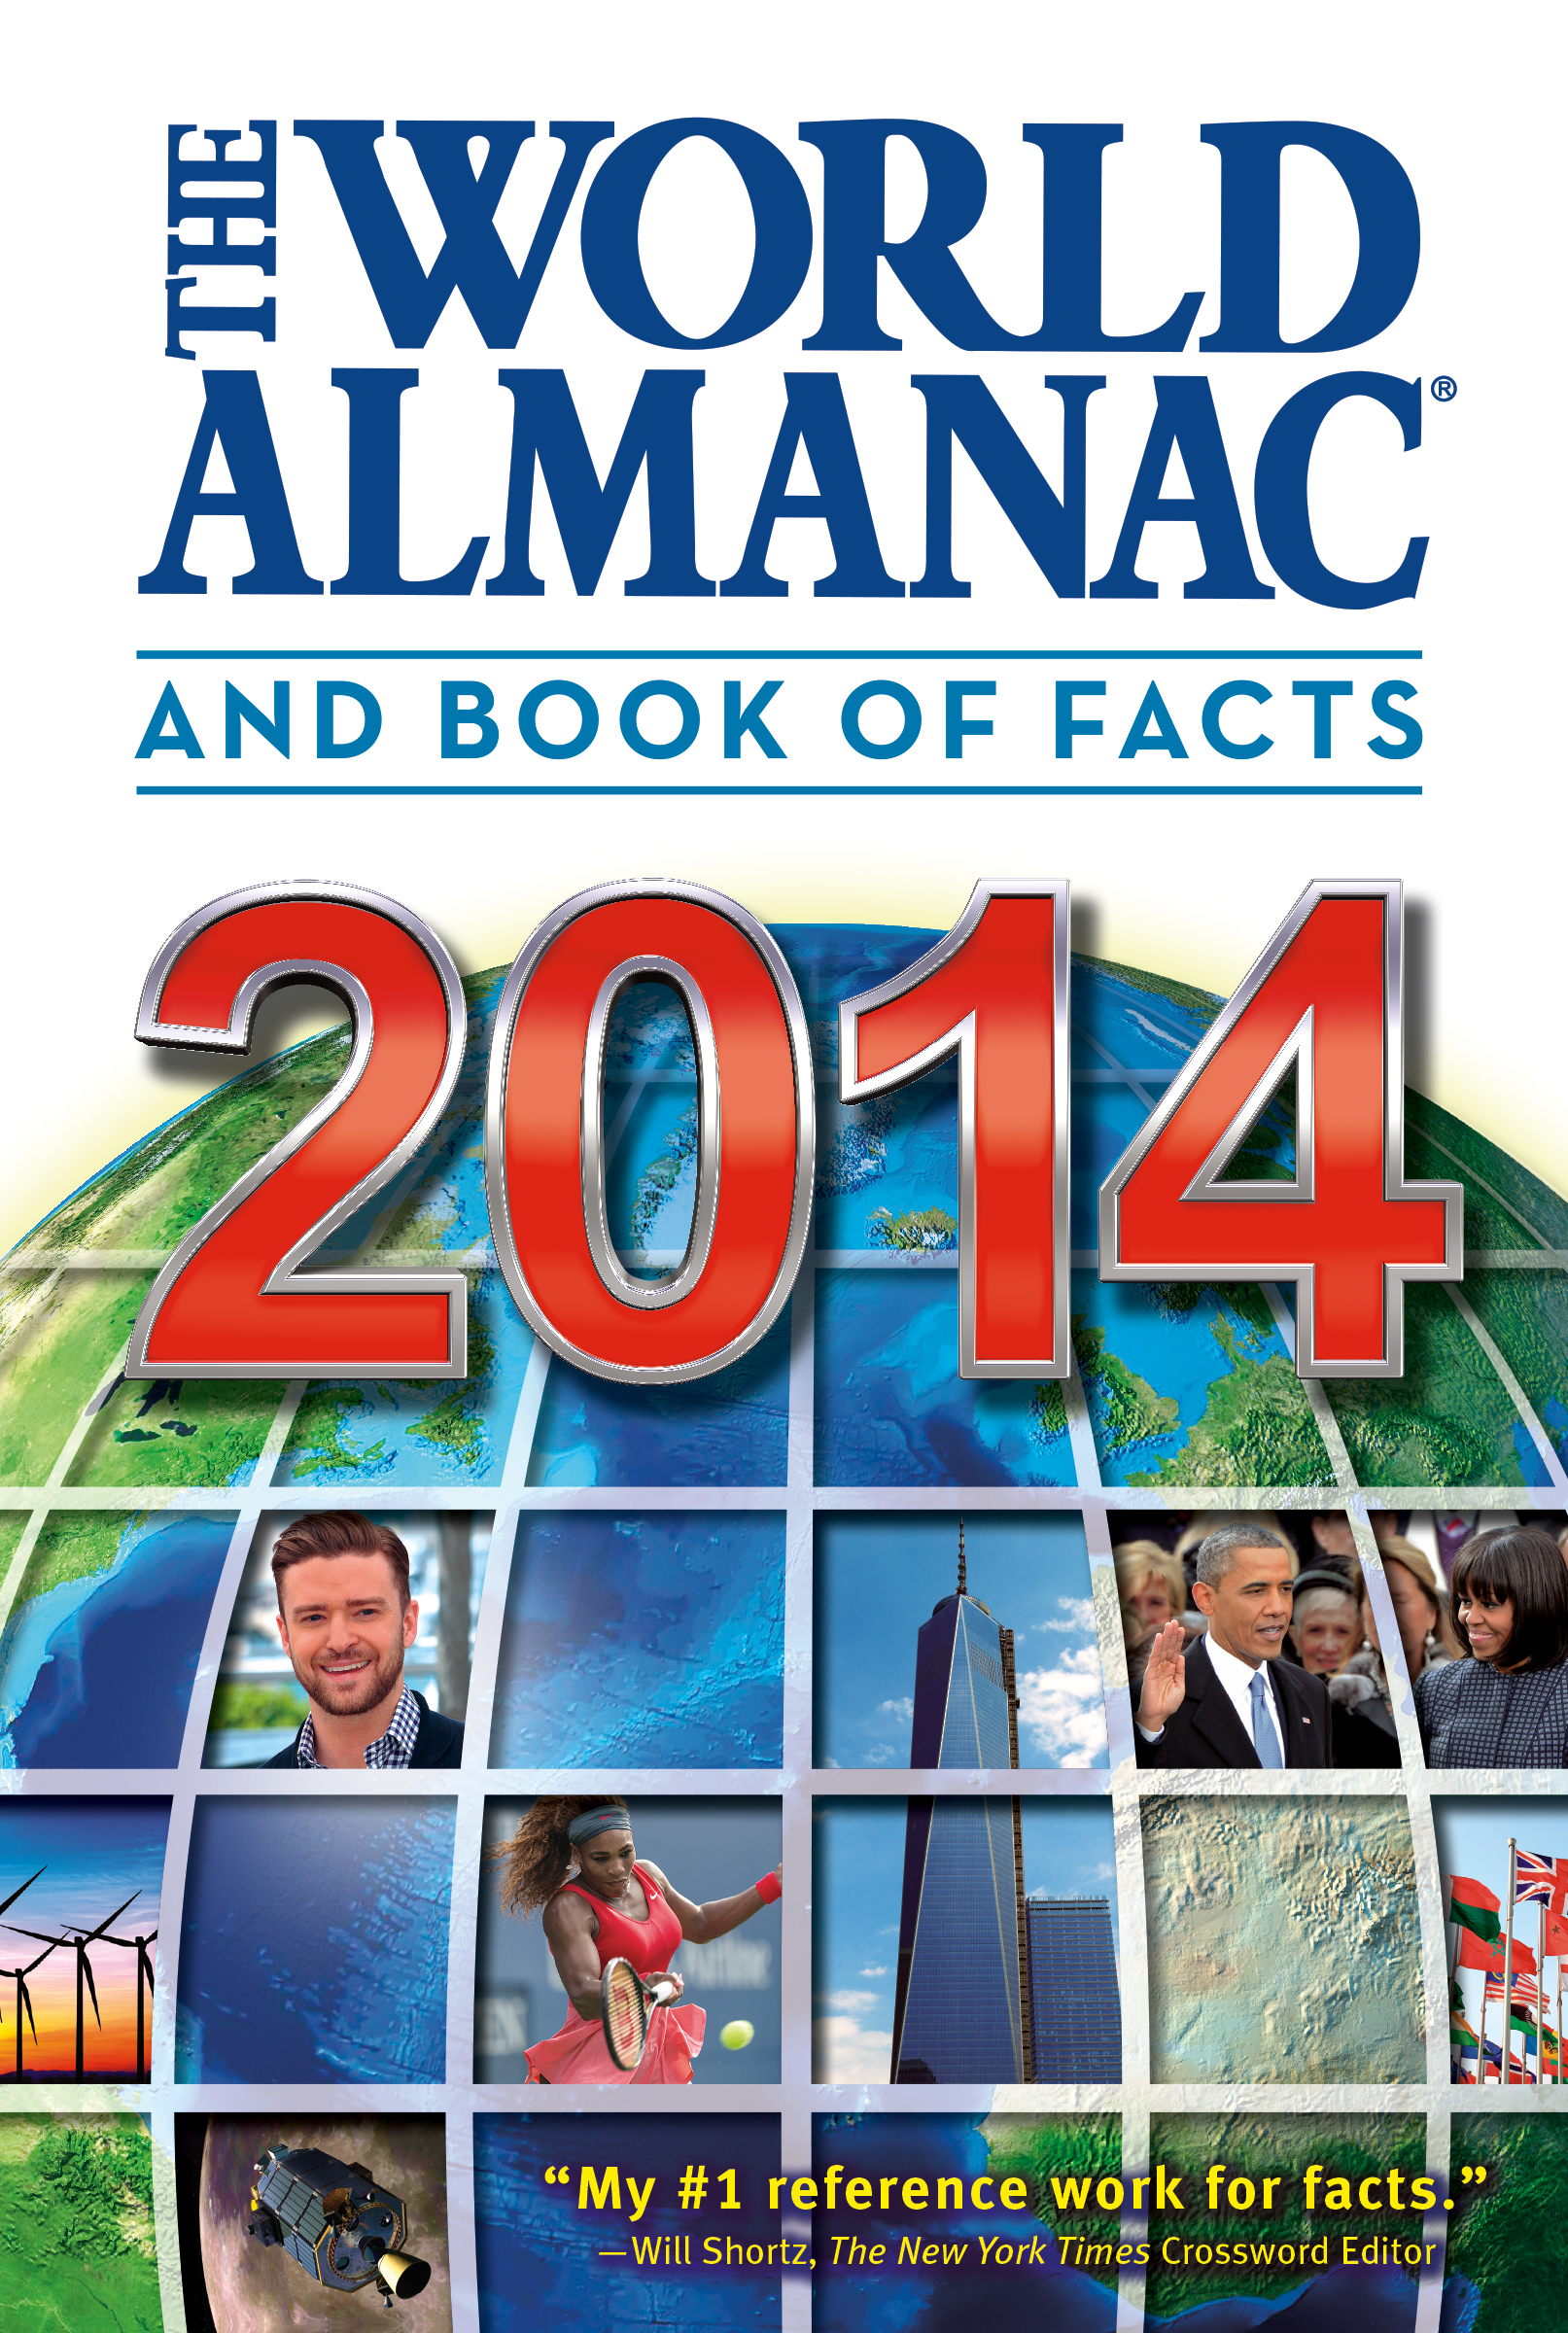 World almanac and book of facts 2014 9781600571831 hr